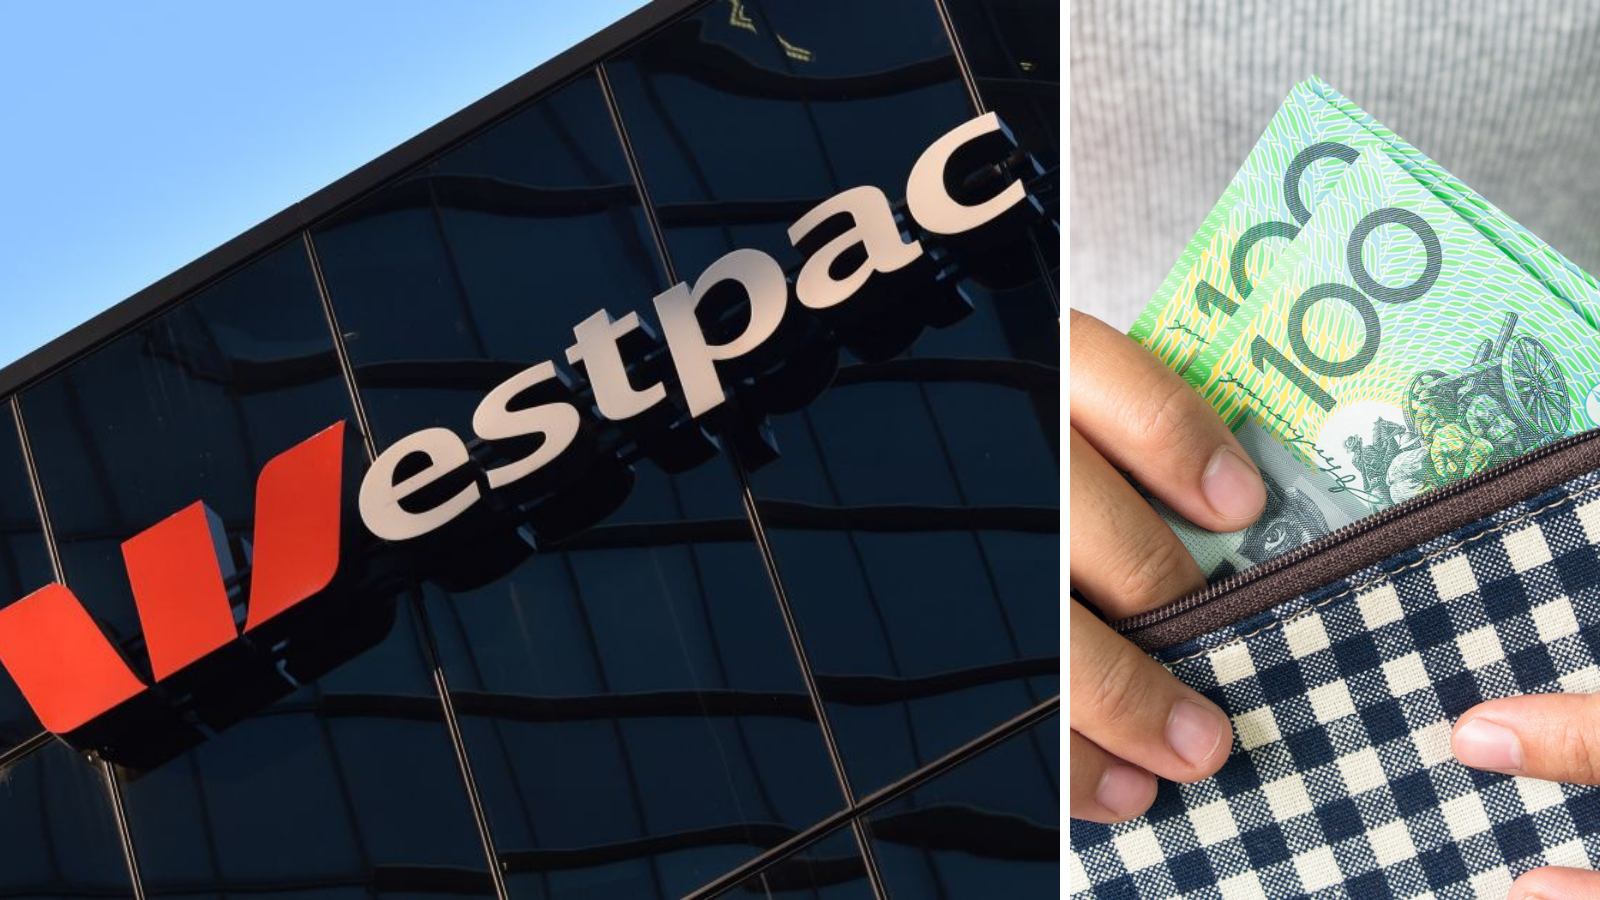 Westpac to refund 30,000 Aussies - are you one of them?